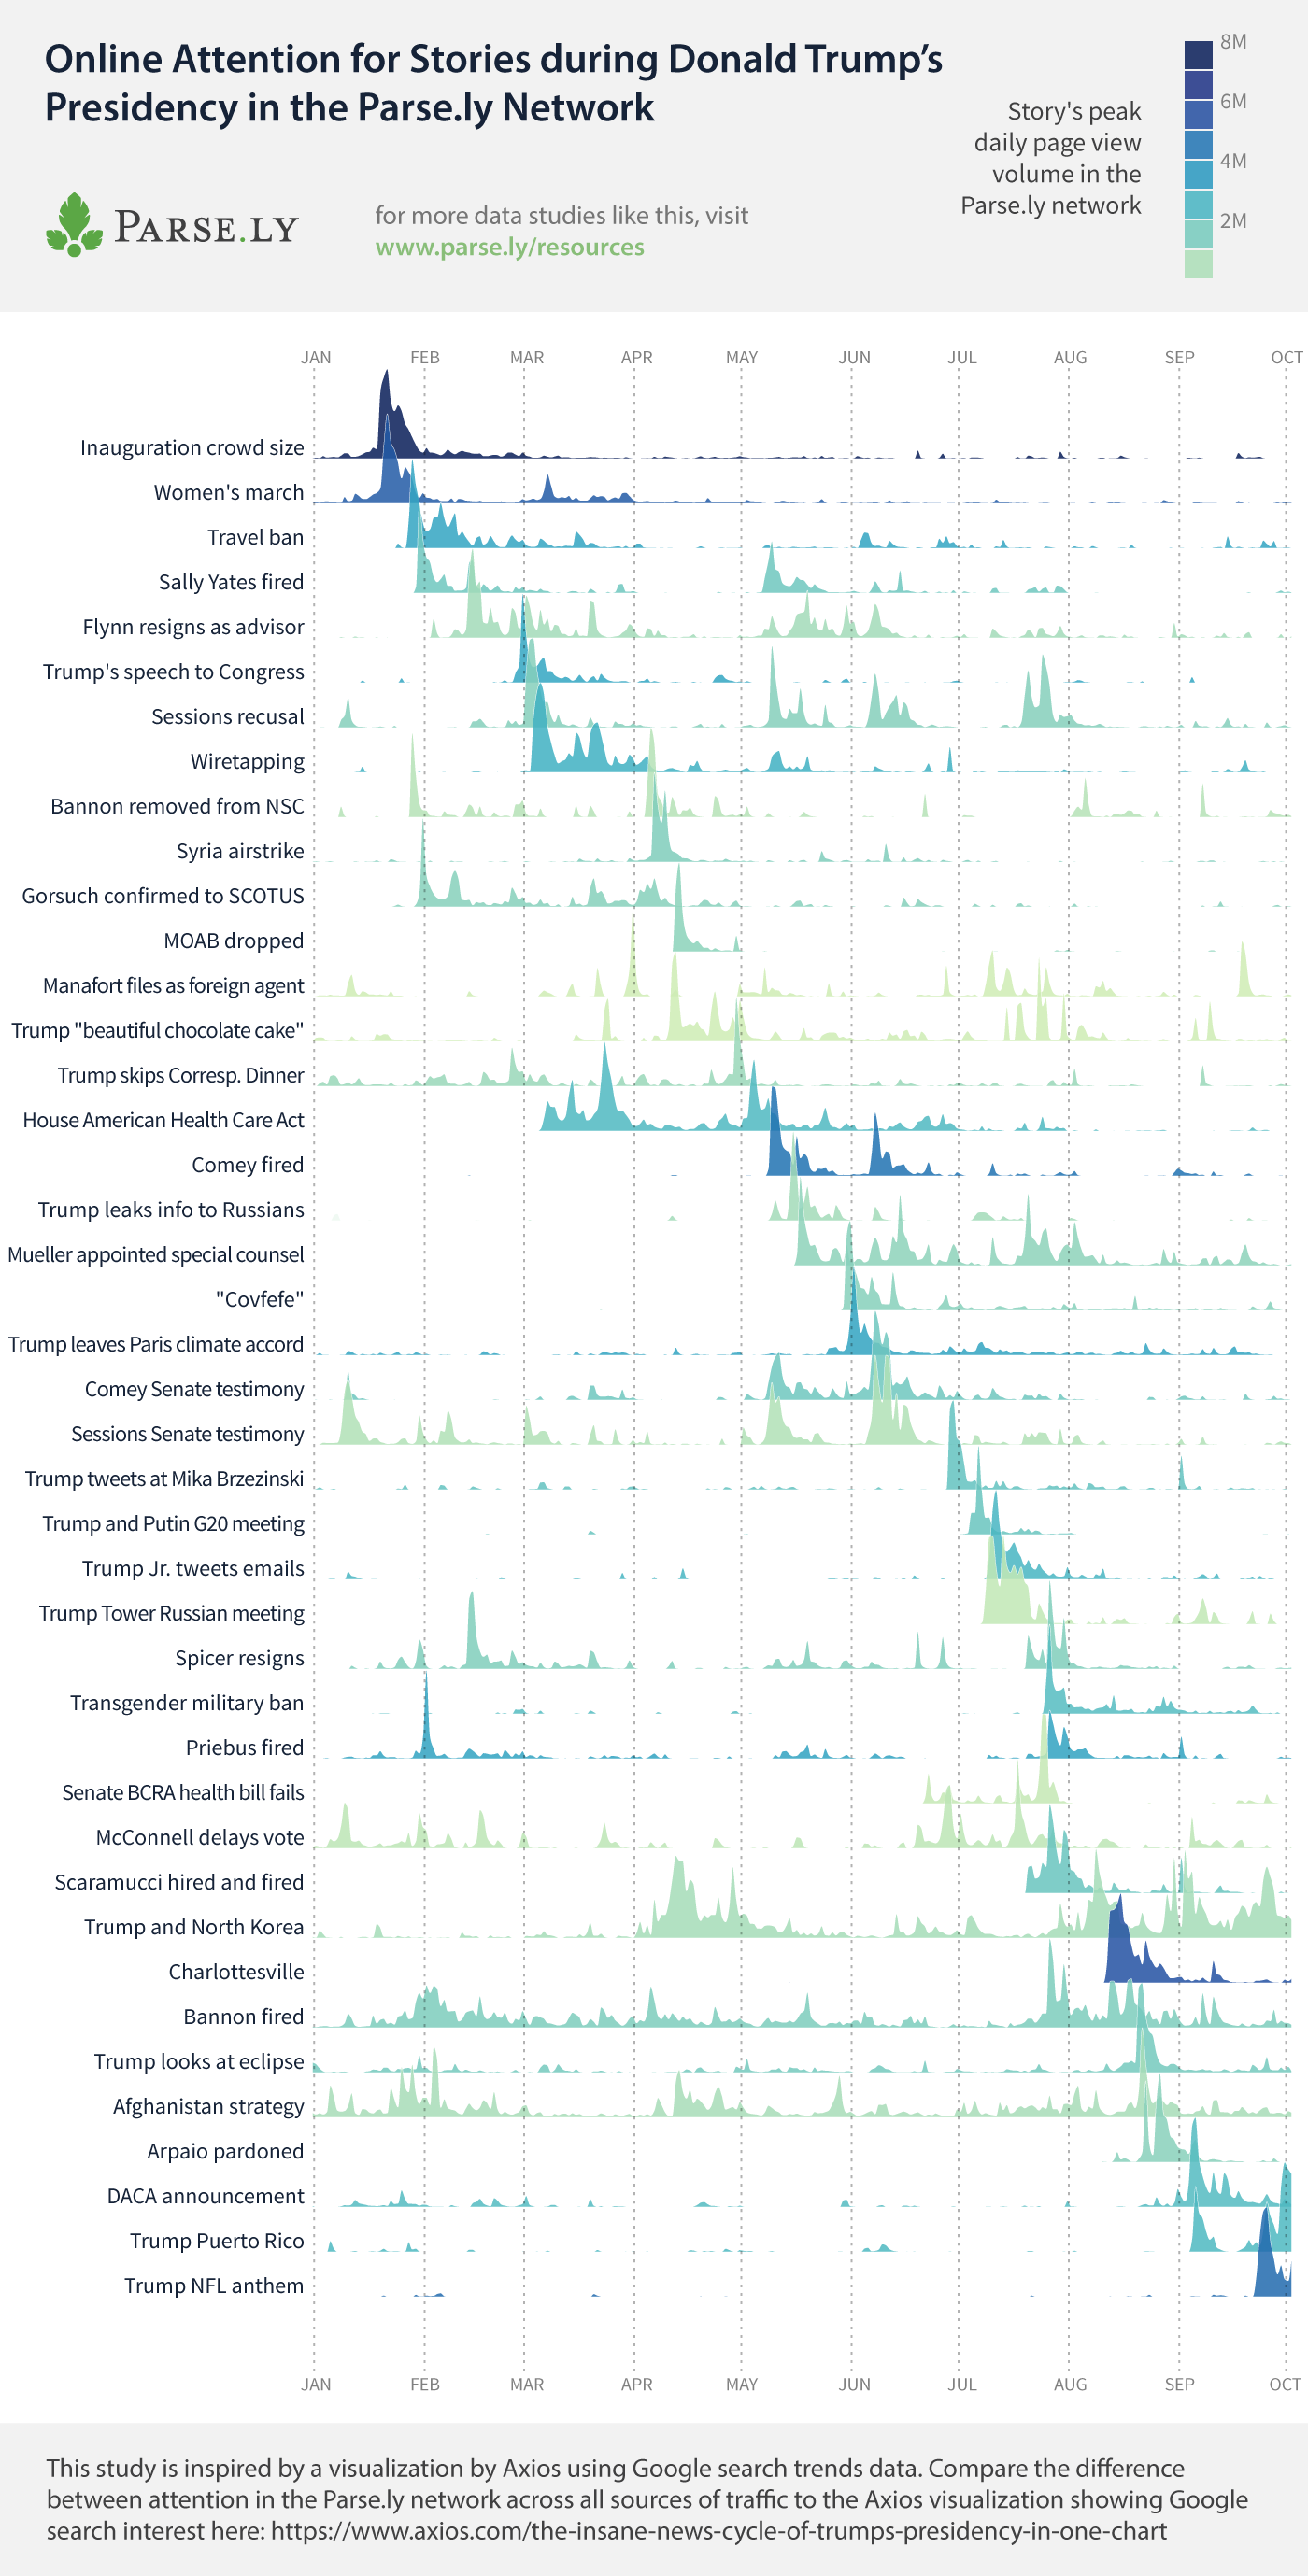 Trump events traffic in the Parse.ly network